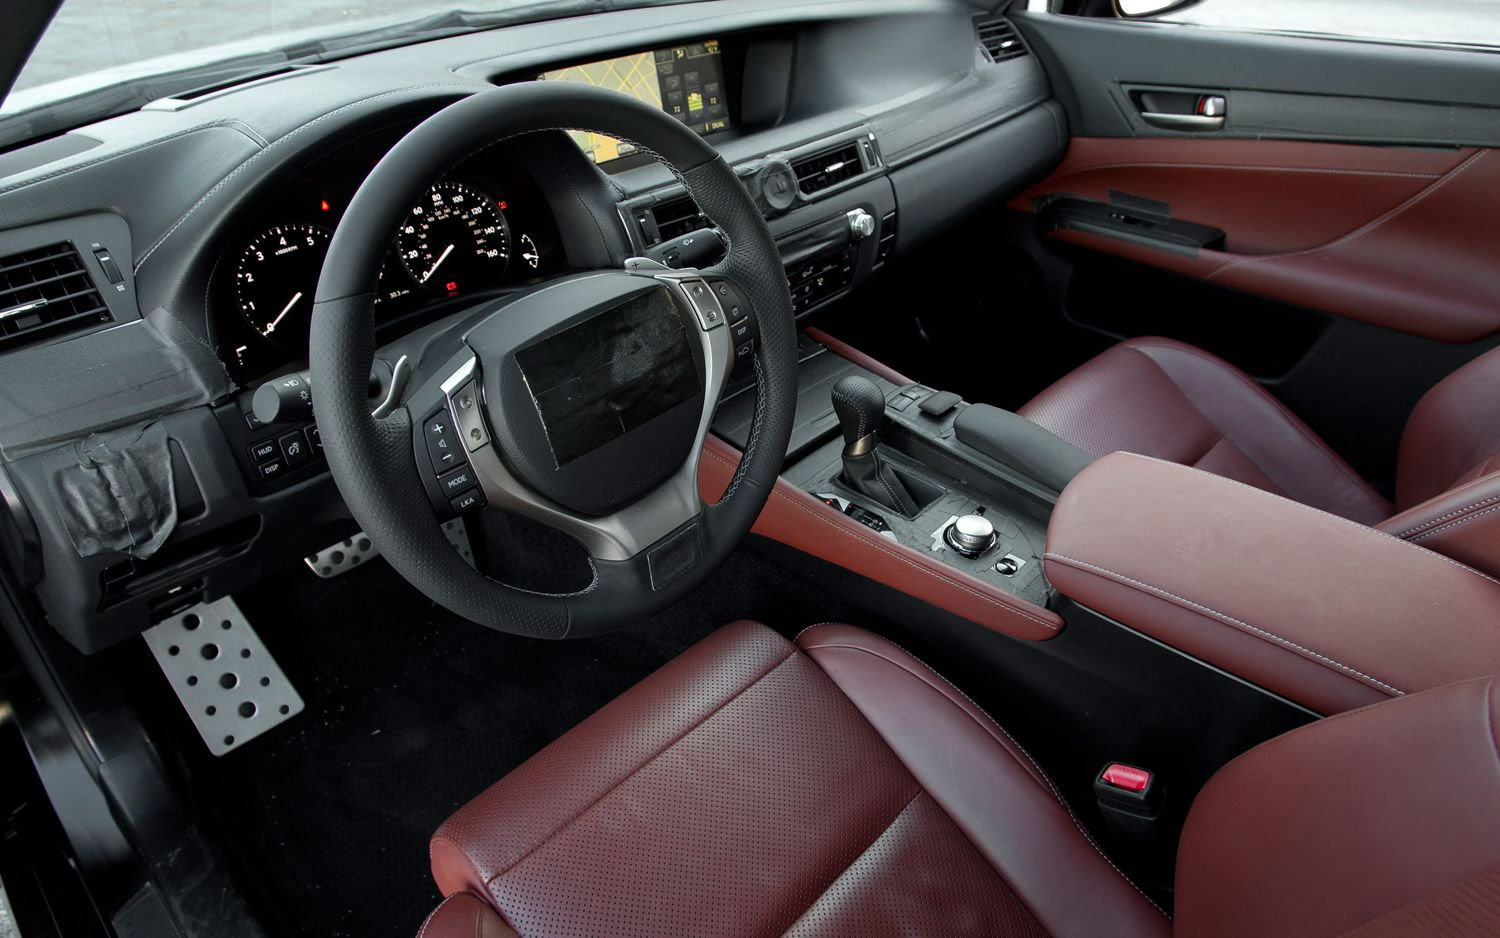 The 2013 Lexus GS350 With F SPORT Interior.